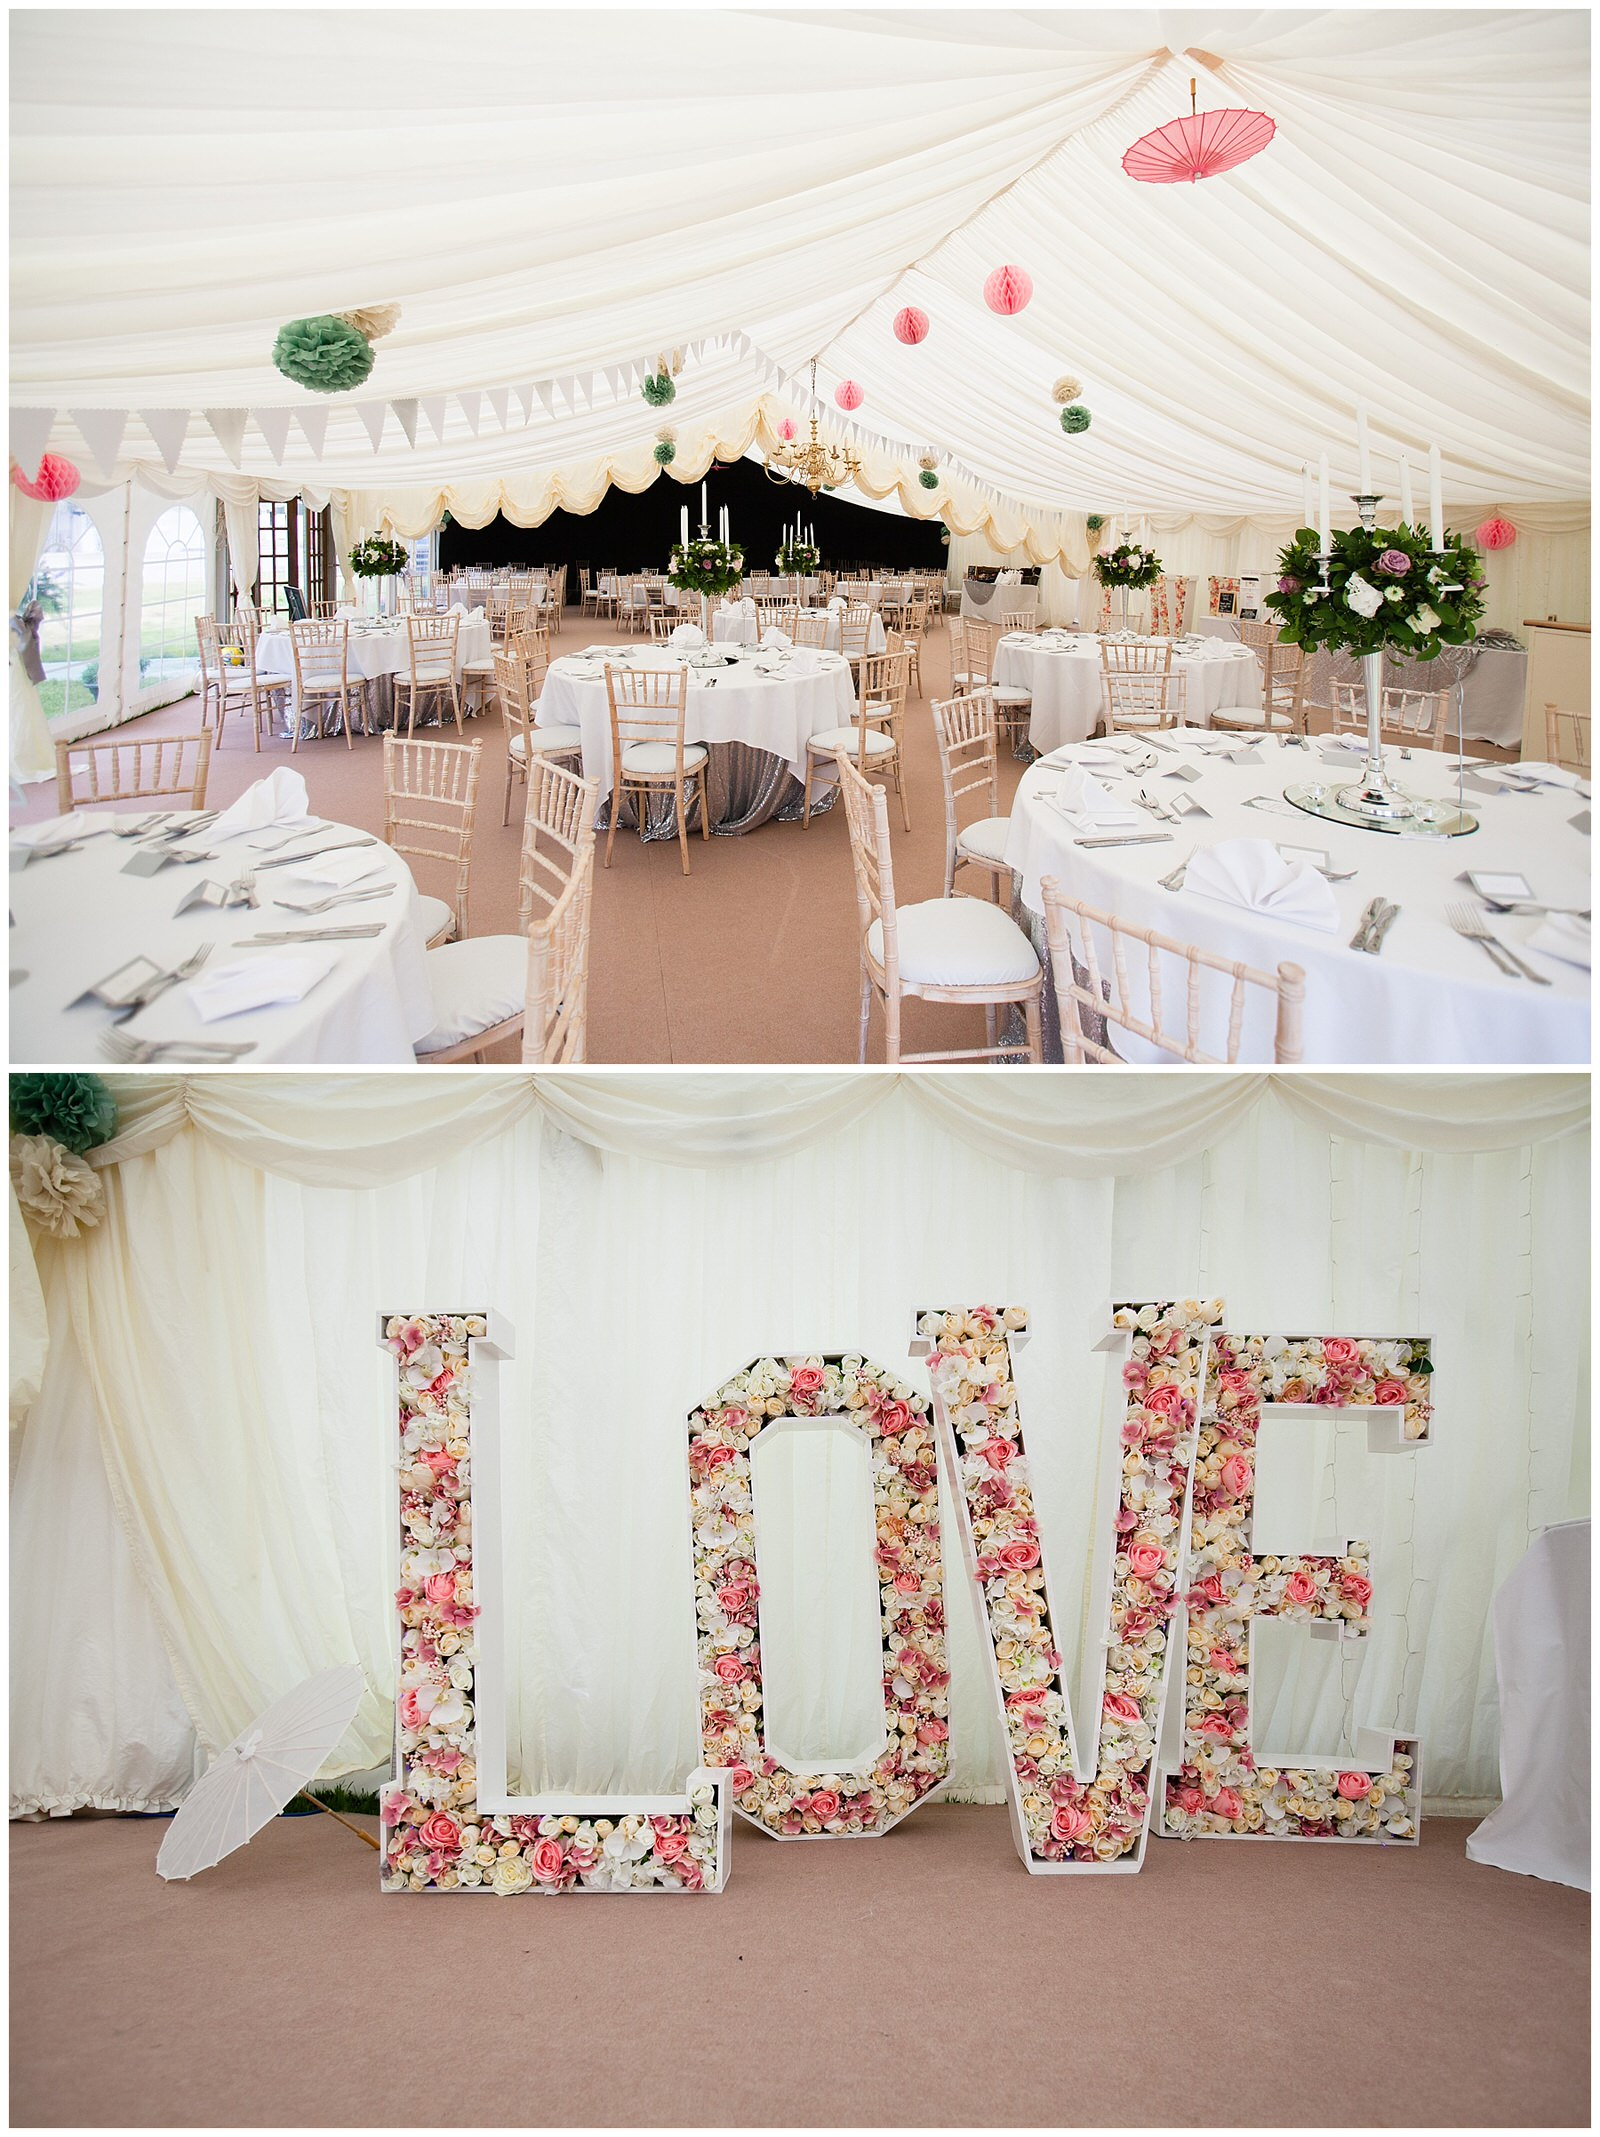 summer marquee wedding reception with pom poms on the ceiling - Charlotte Giddings Photography